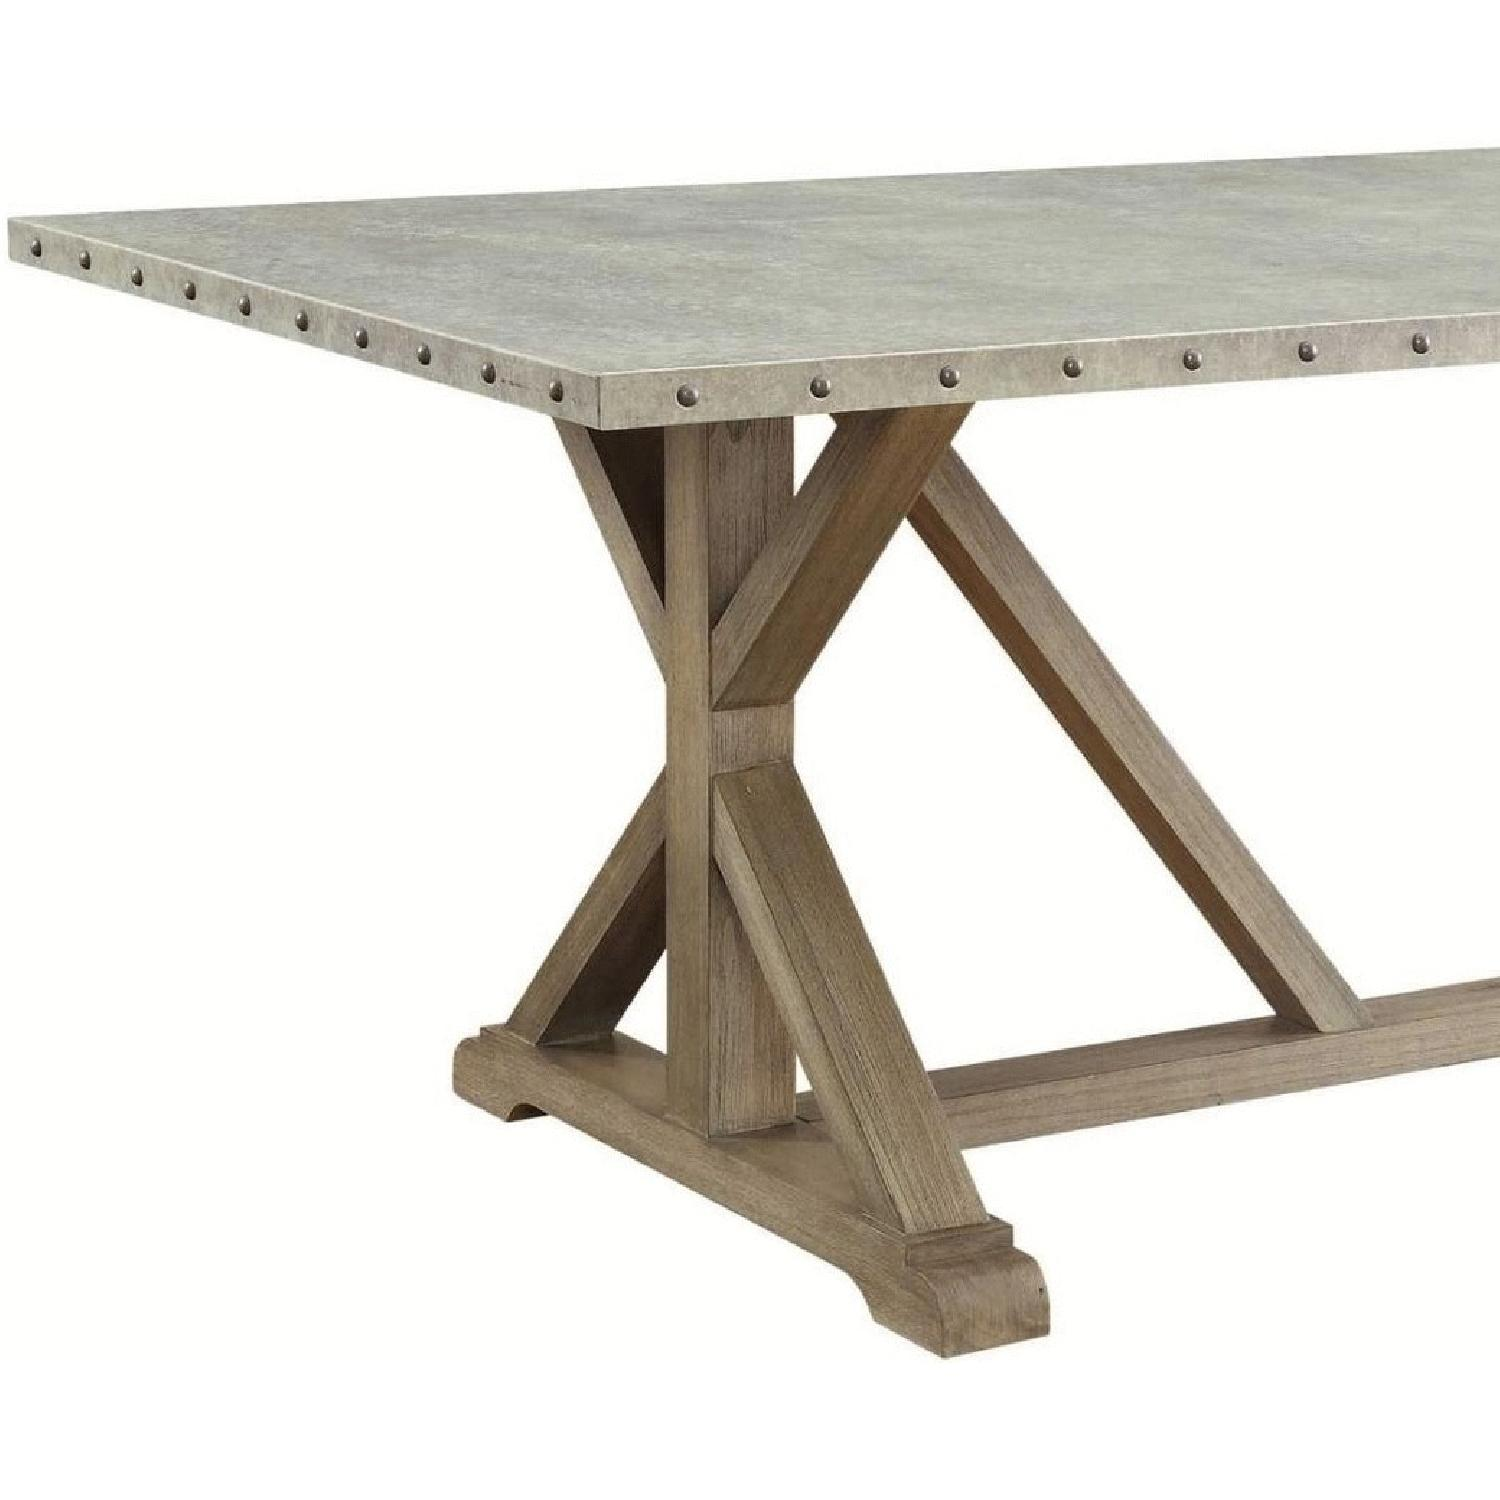 Industrial Vintage Style Dining Table w/ Handcrafted Top - image-6